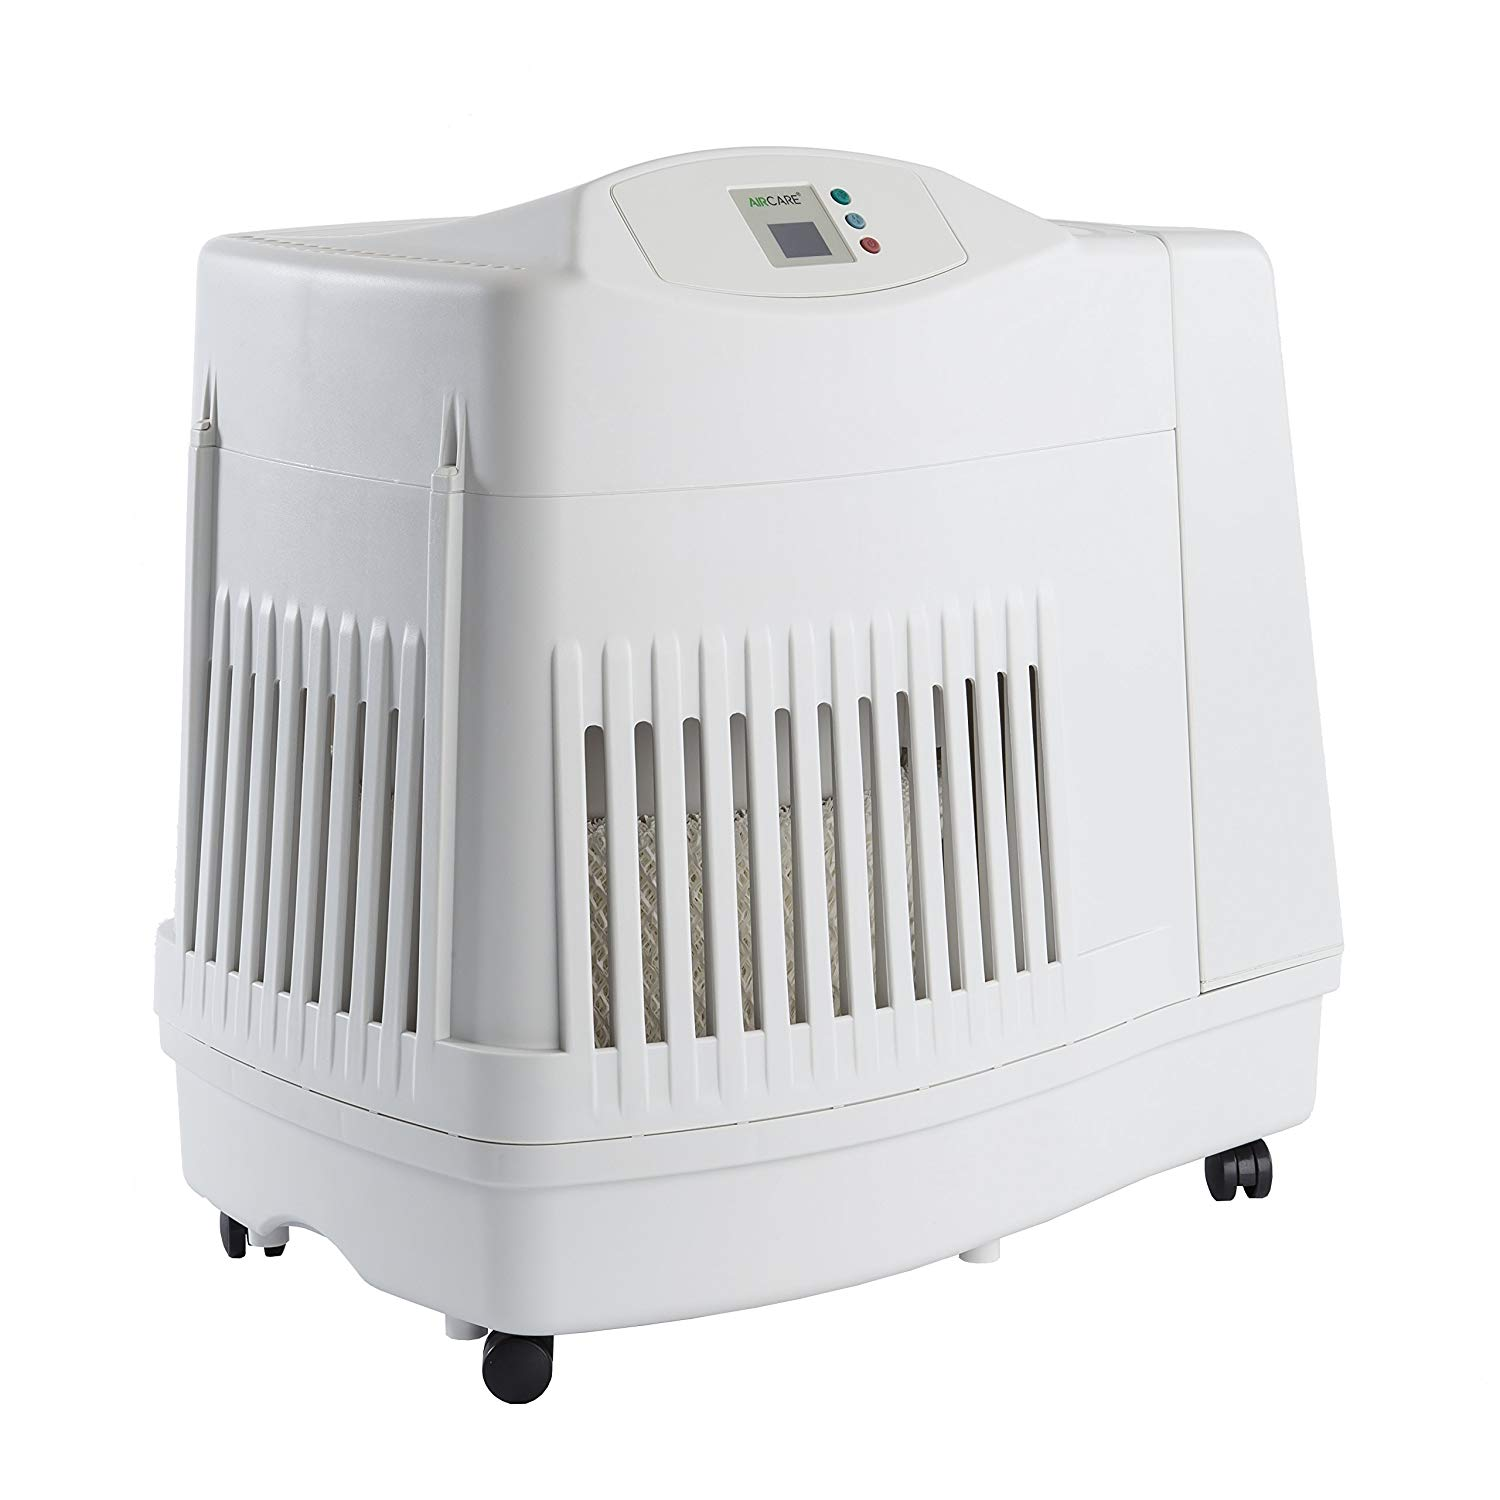 AIRCARE MA1201 Whole-House Console-Style Evaporative Best Humidifier Review by www.snoremagazine.com